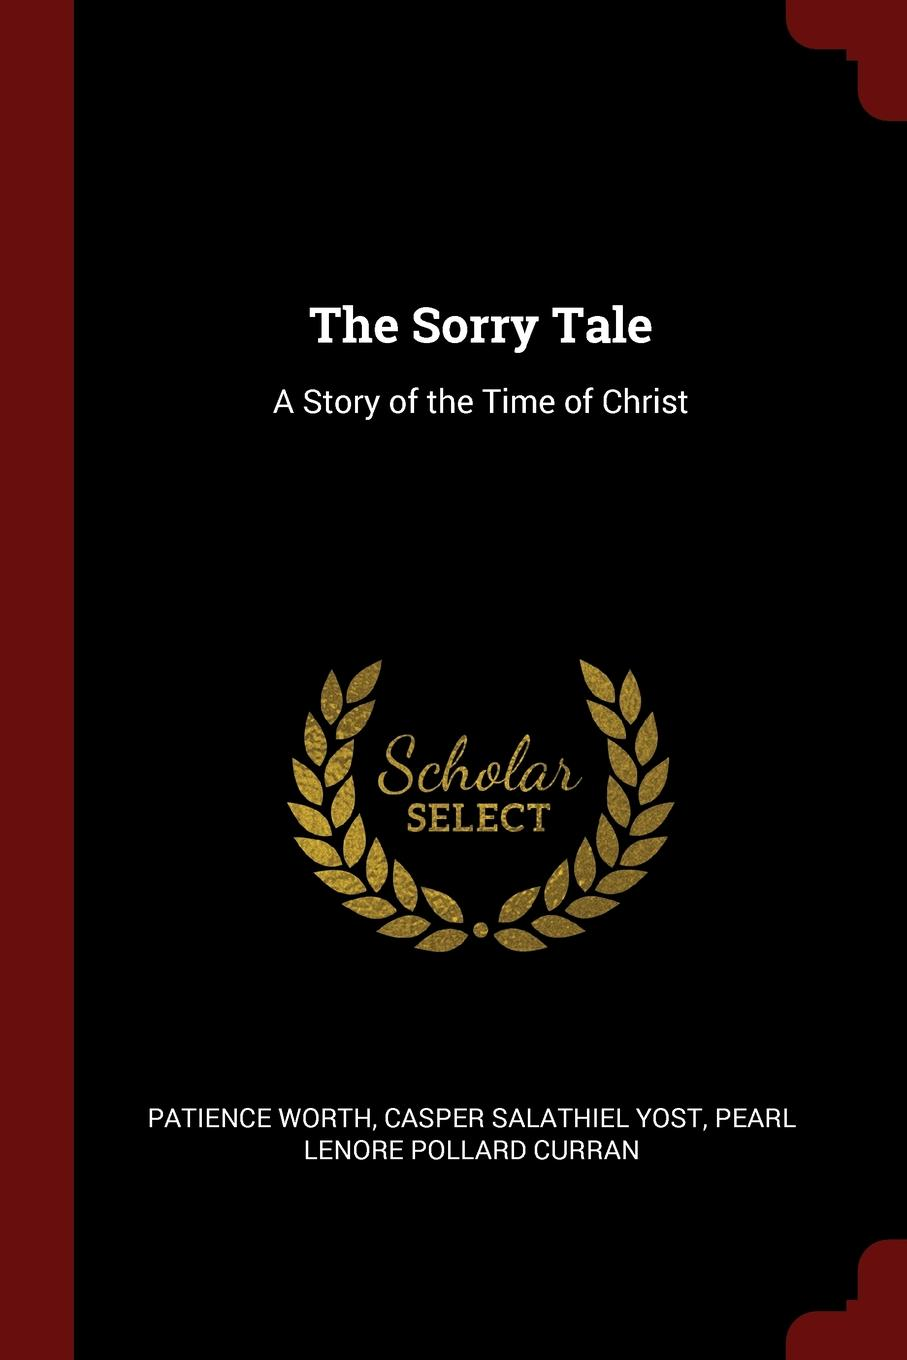 Patience Worth, Casper Salathiel Yost, Pearl Lenore Pollard Curran The Sorry Tale. A Story of the Time of Christ